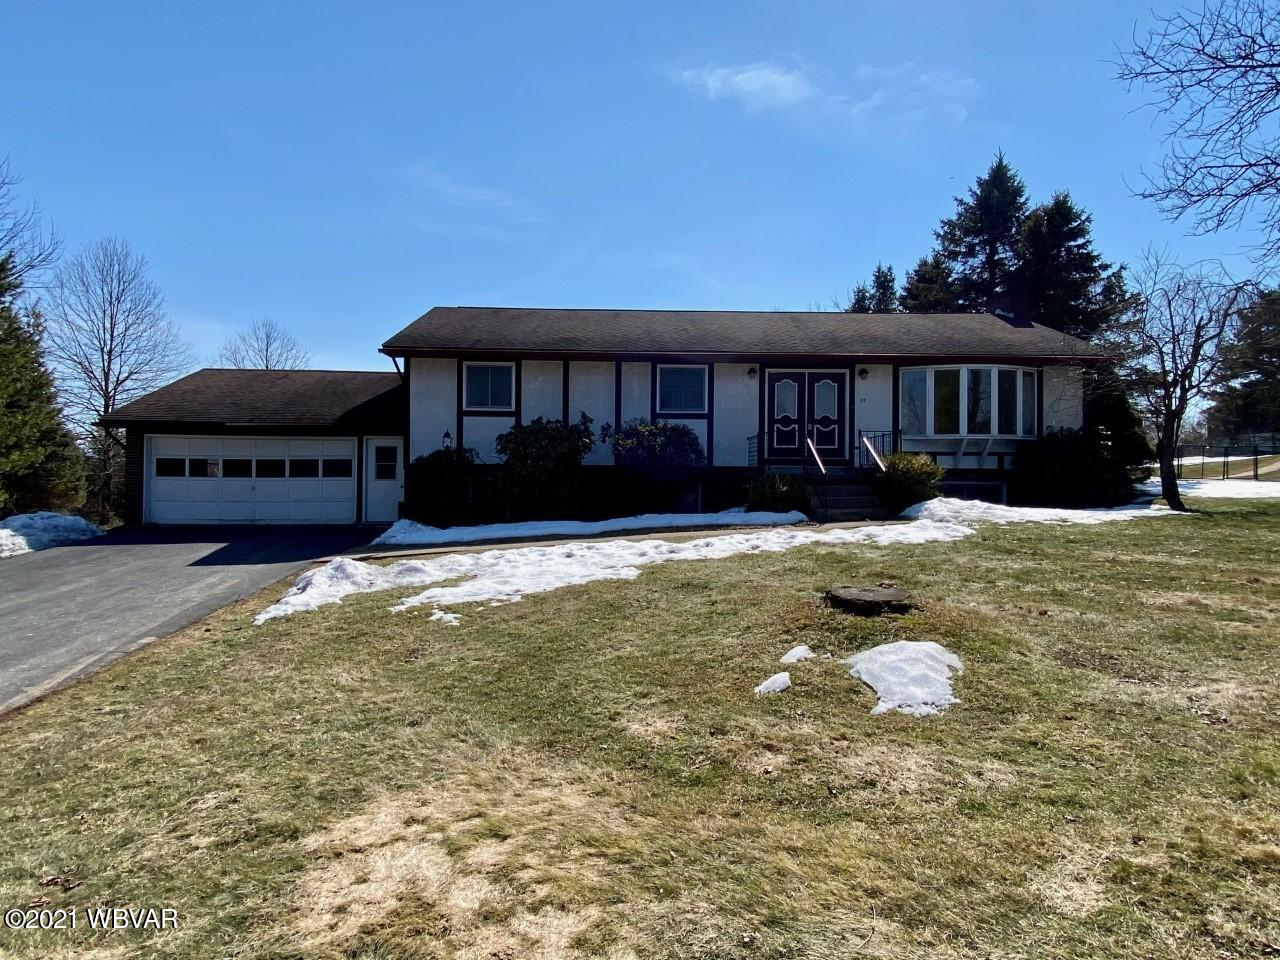 35 MARVIN CIRCLE, Williamsport, PA 17701, 4 Bedrooms Bedrooms, ,3 BathroomsBathrooms,Residential,For sale,MARVIN,WB-92020